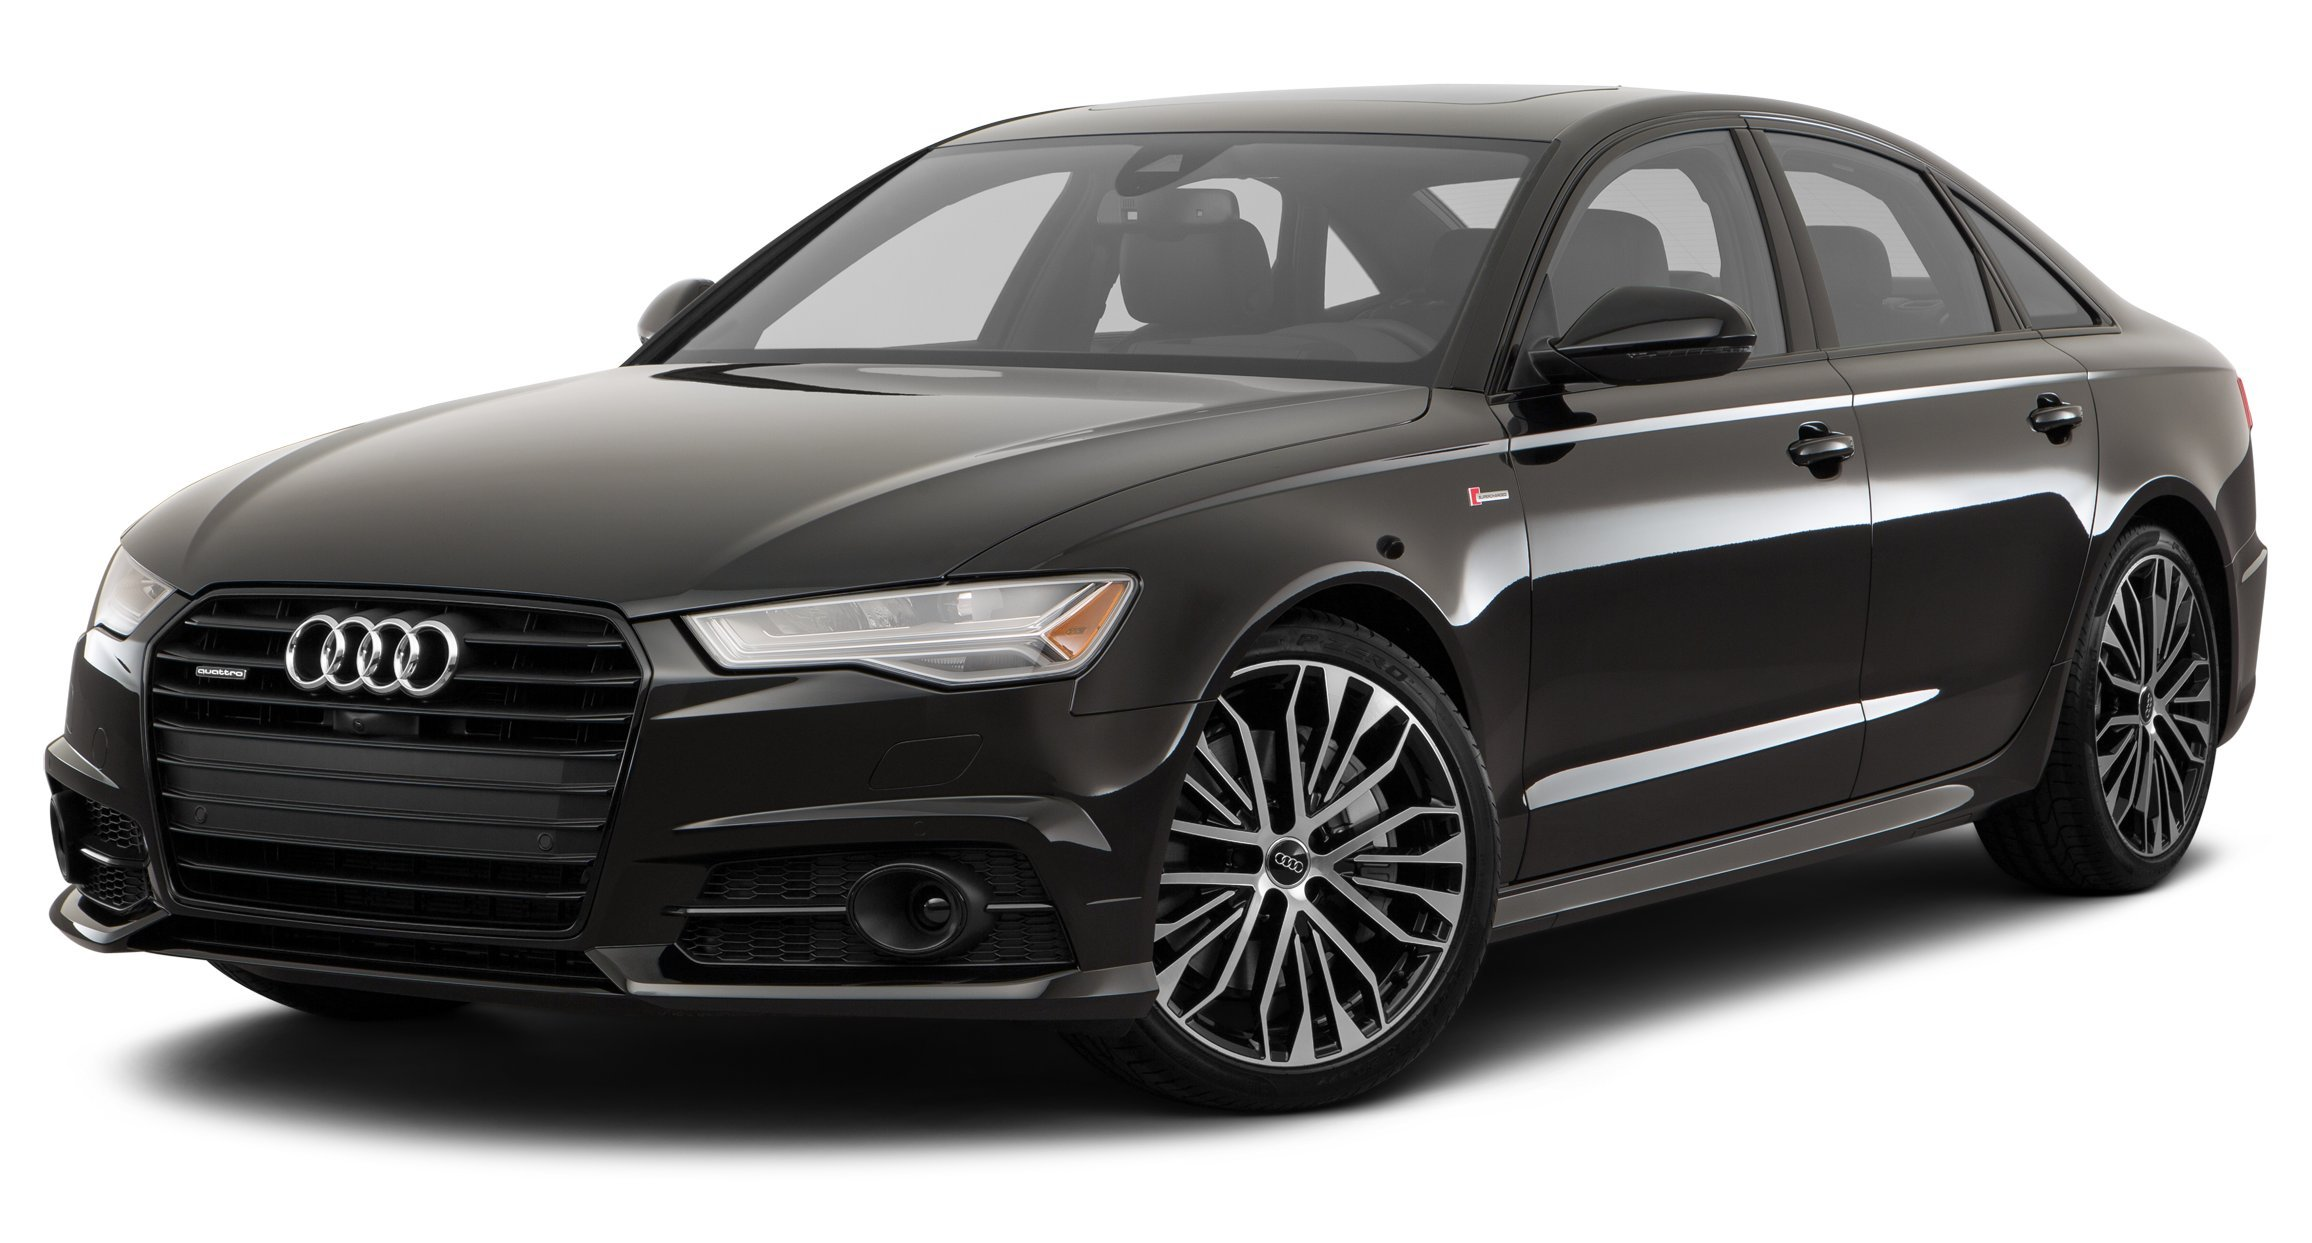 Amazon.com: 2017 Audi A6 Quattro Reviews, Images, and ...